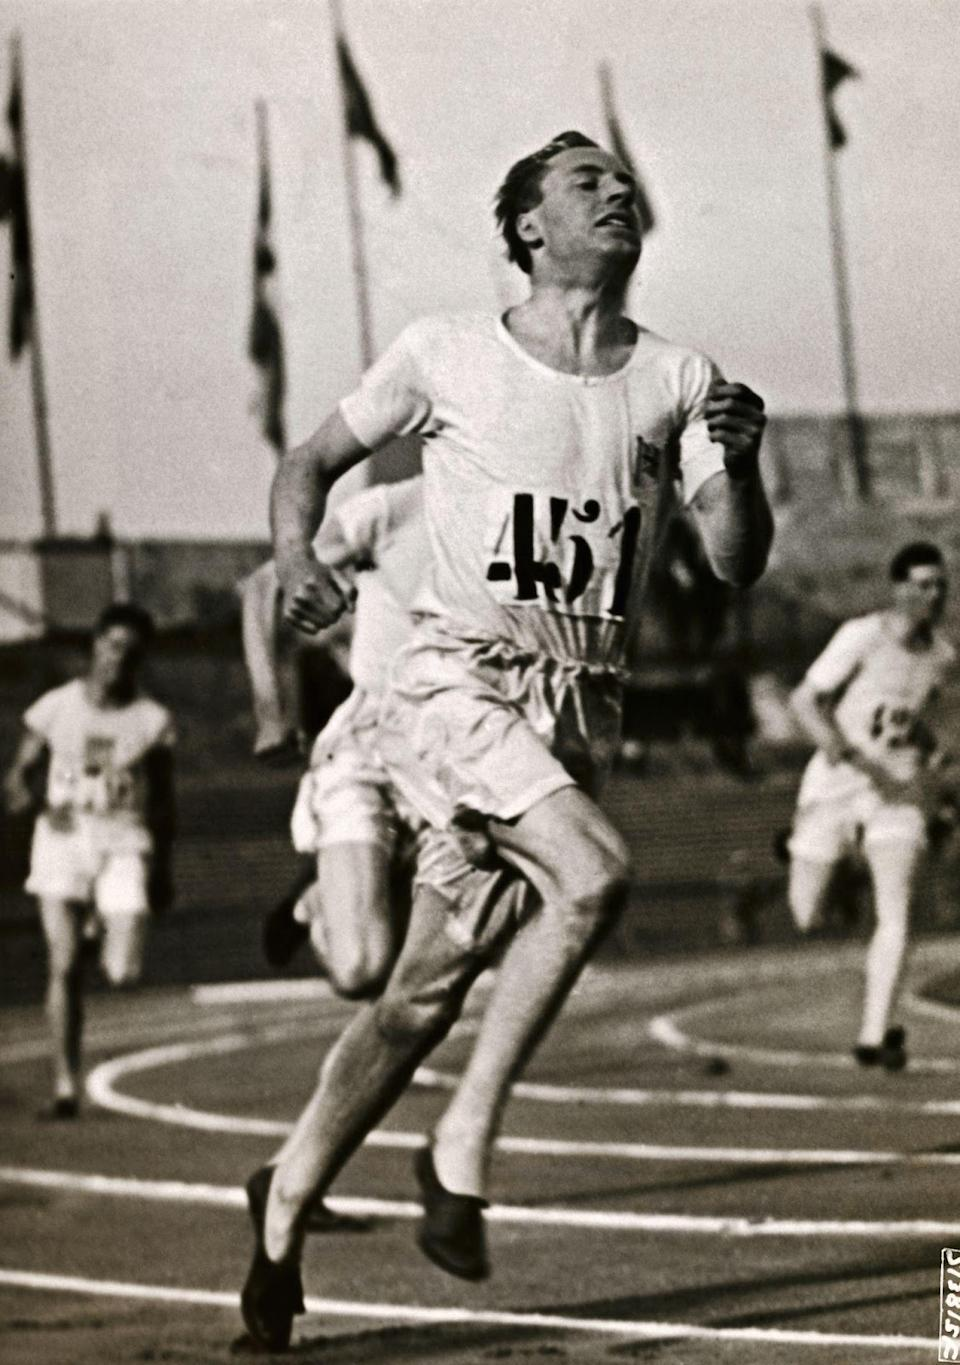 Eric Liddell winning the 400m finals at the 1924 Paris Olympic Games (PHOTO: George Rinhart/Corbis via Getty Images)